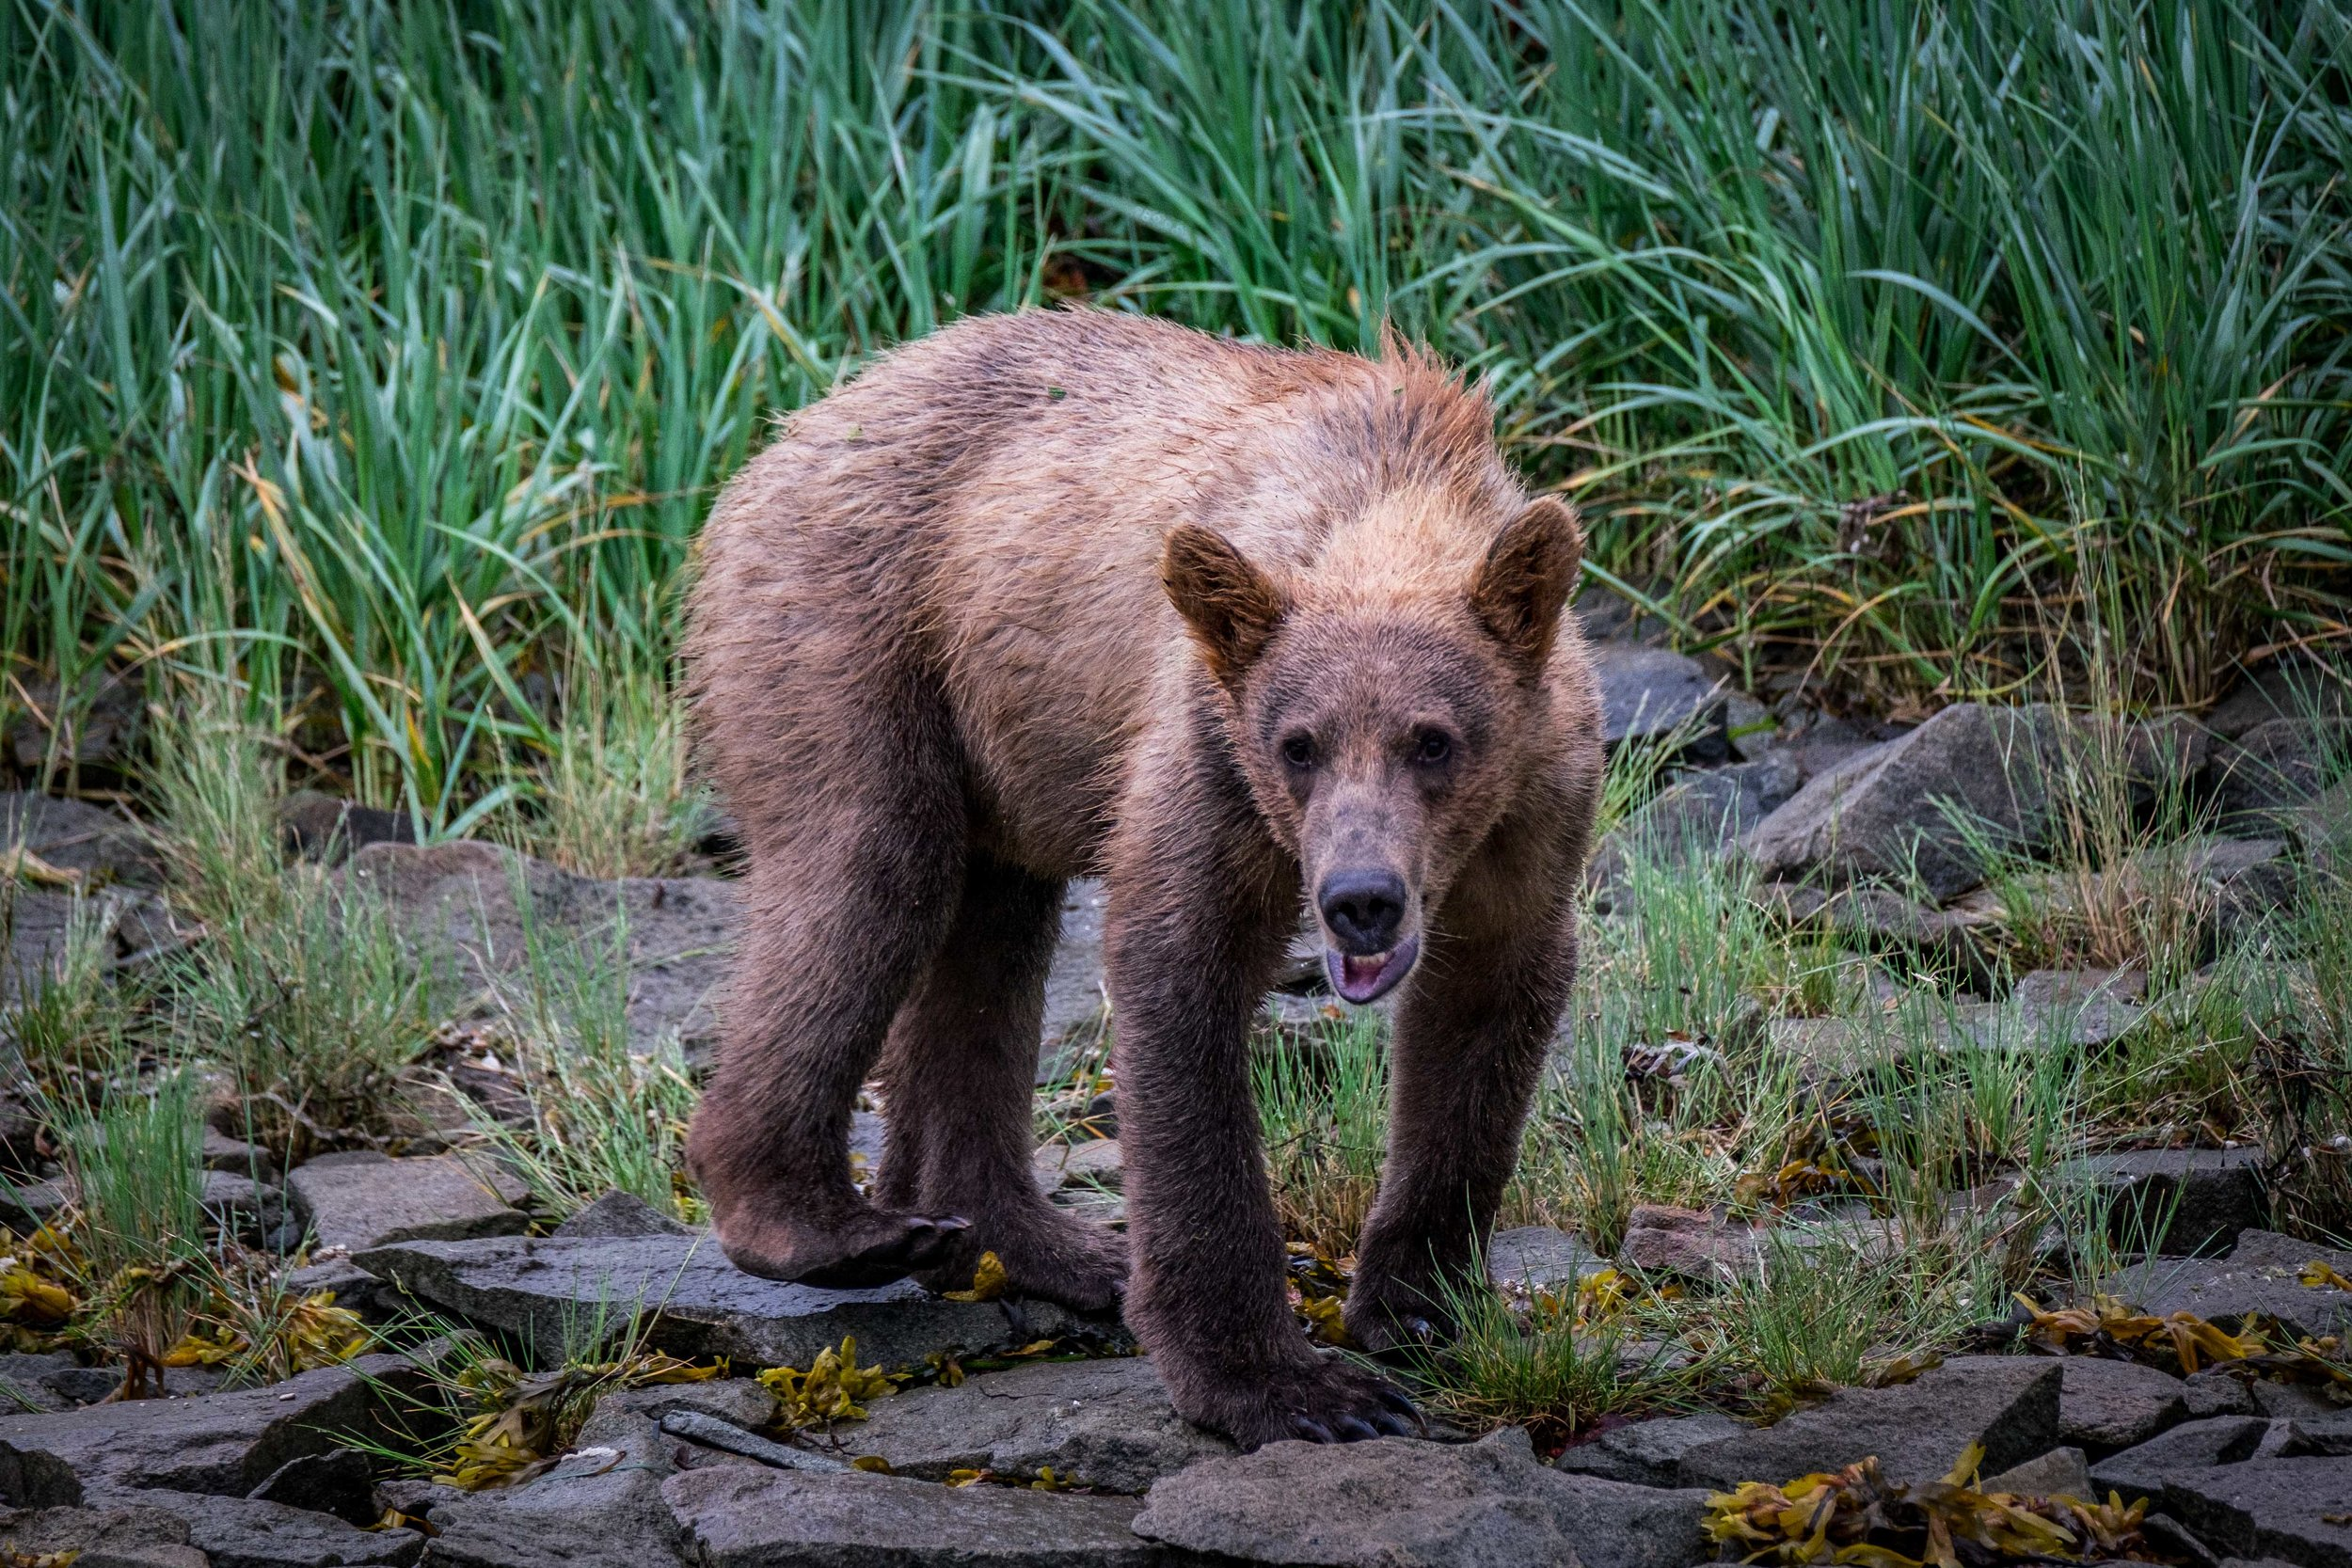 This bear, with its scowl and drool,is displaying stress as our boat nears its environment on the Katmai Peninsula. We quickly moved away!